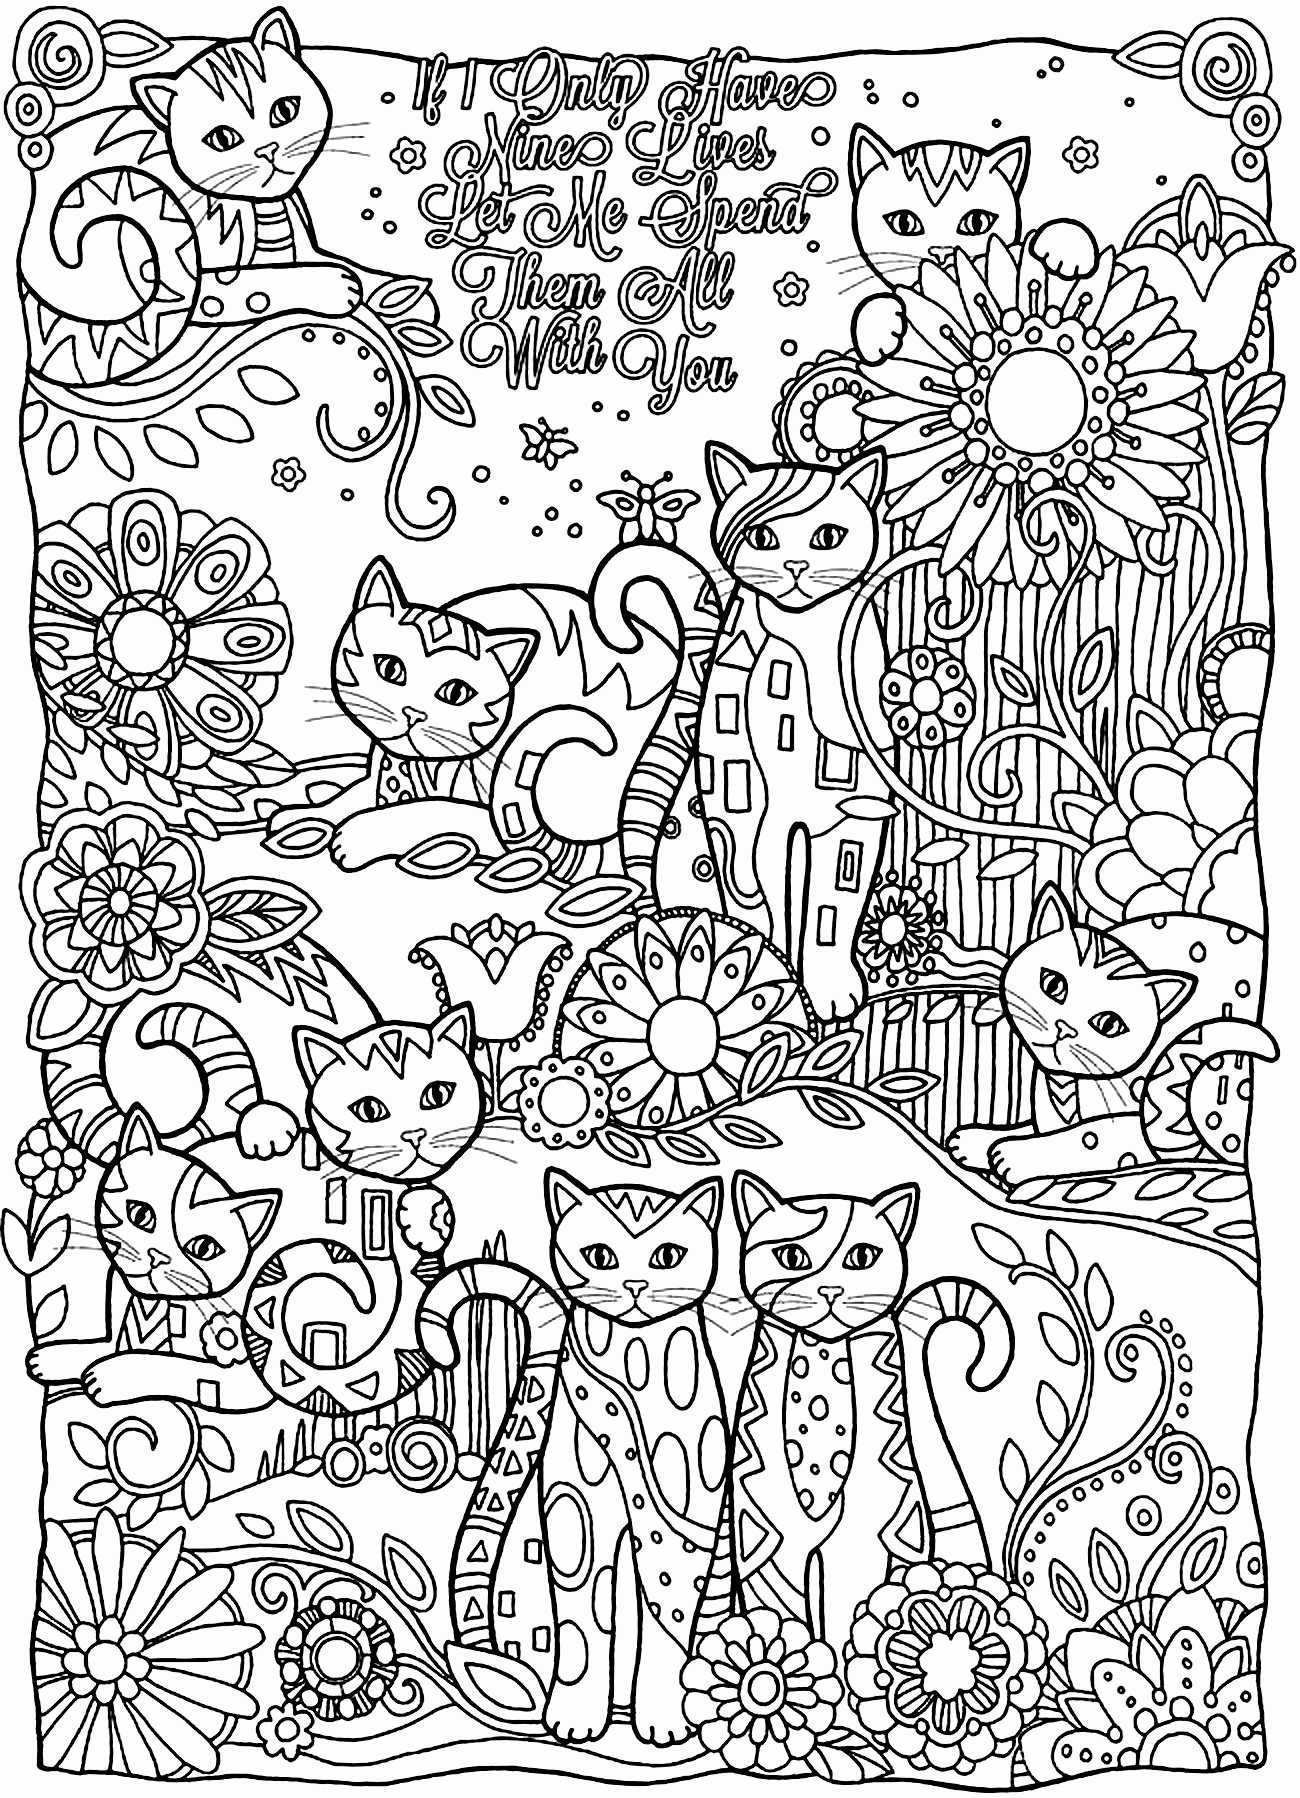 2Nd Grade Coloring Pages Unique Free Holiday Math Coloring throughout Math Coloring Worksheets For 2Nd Graders